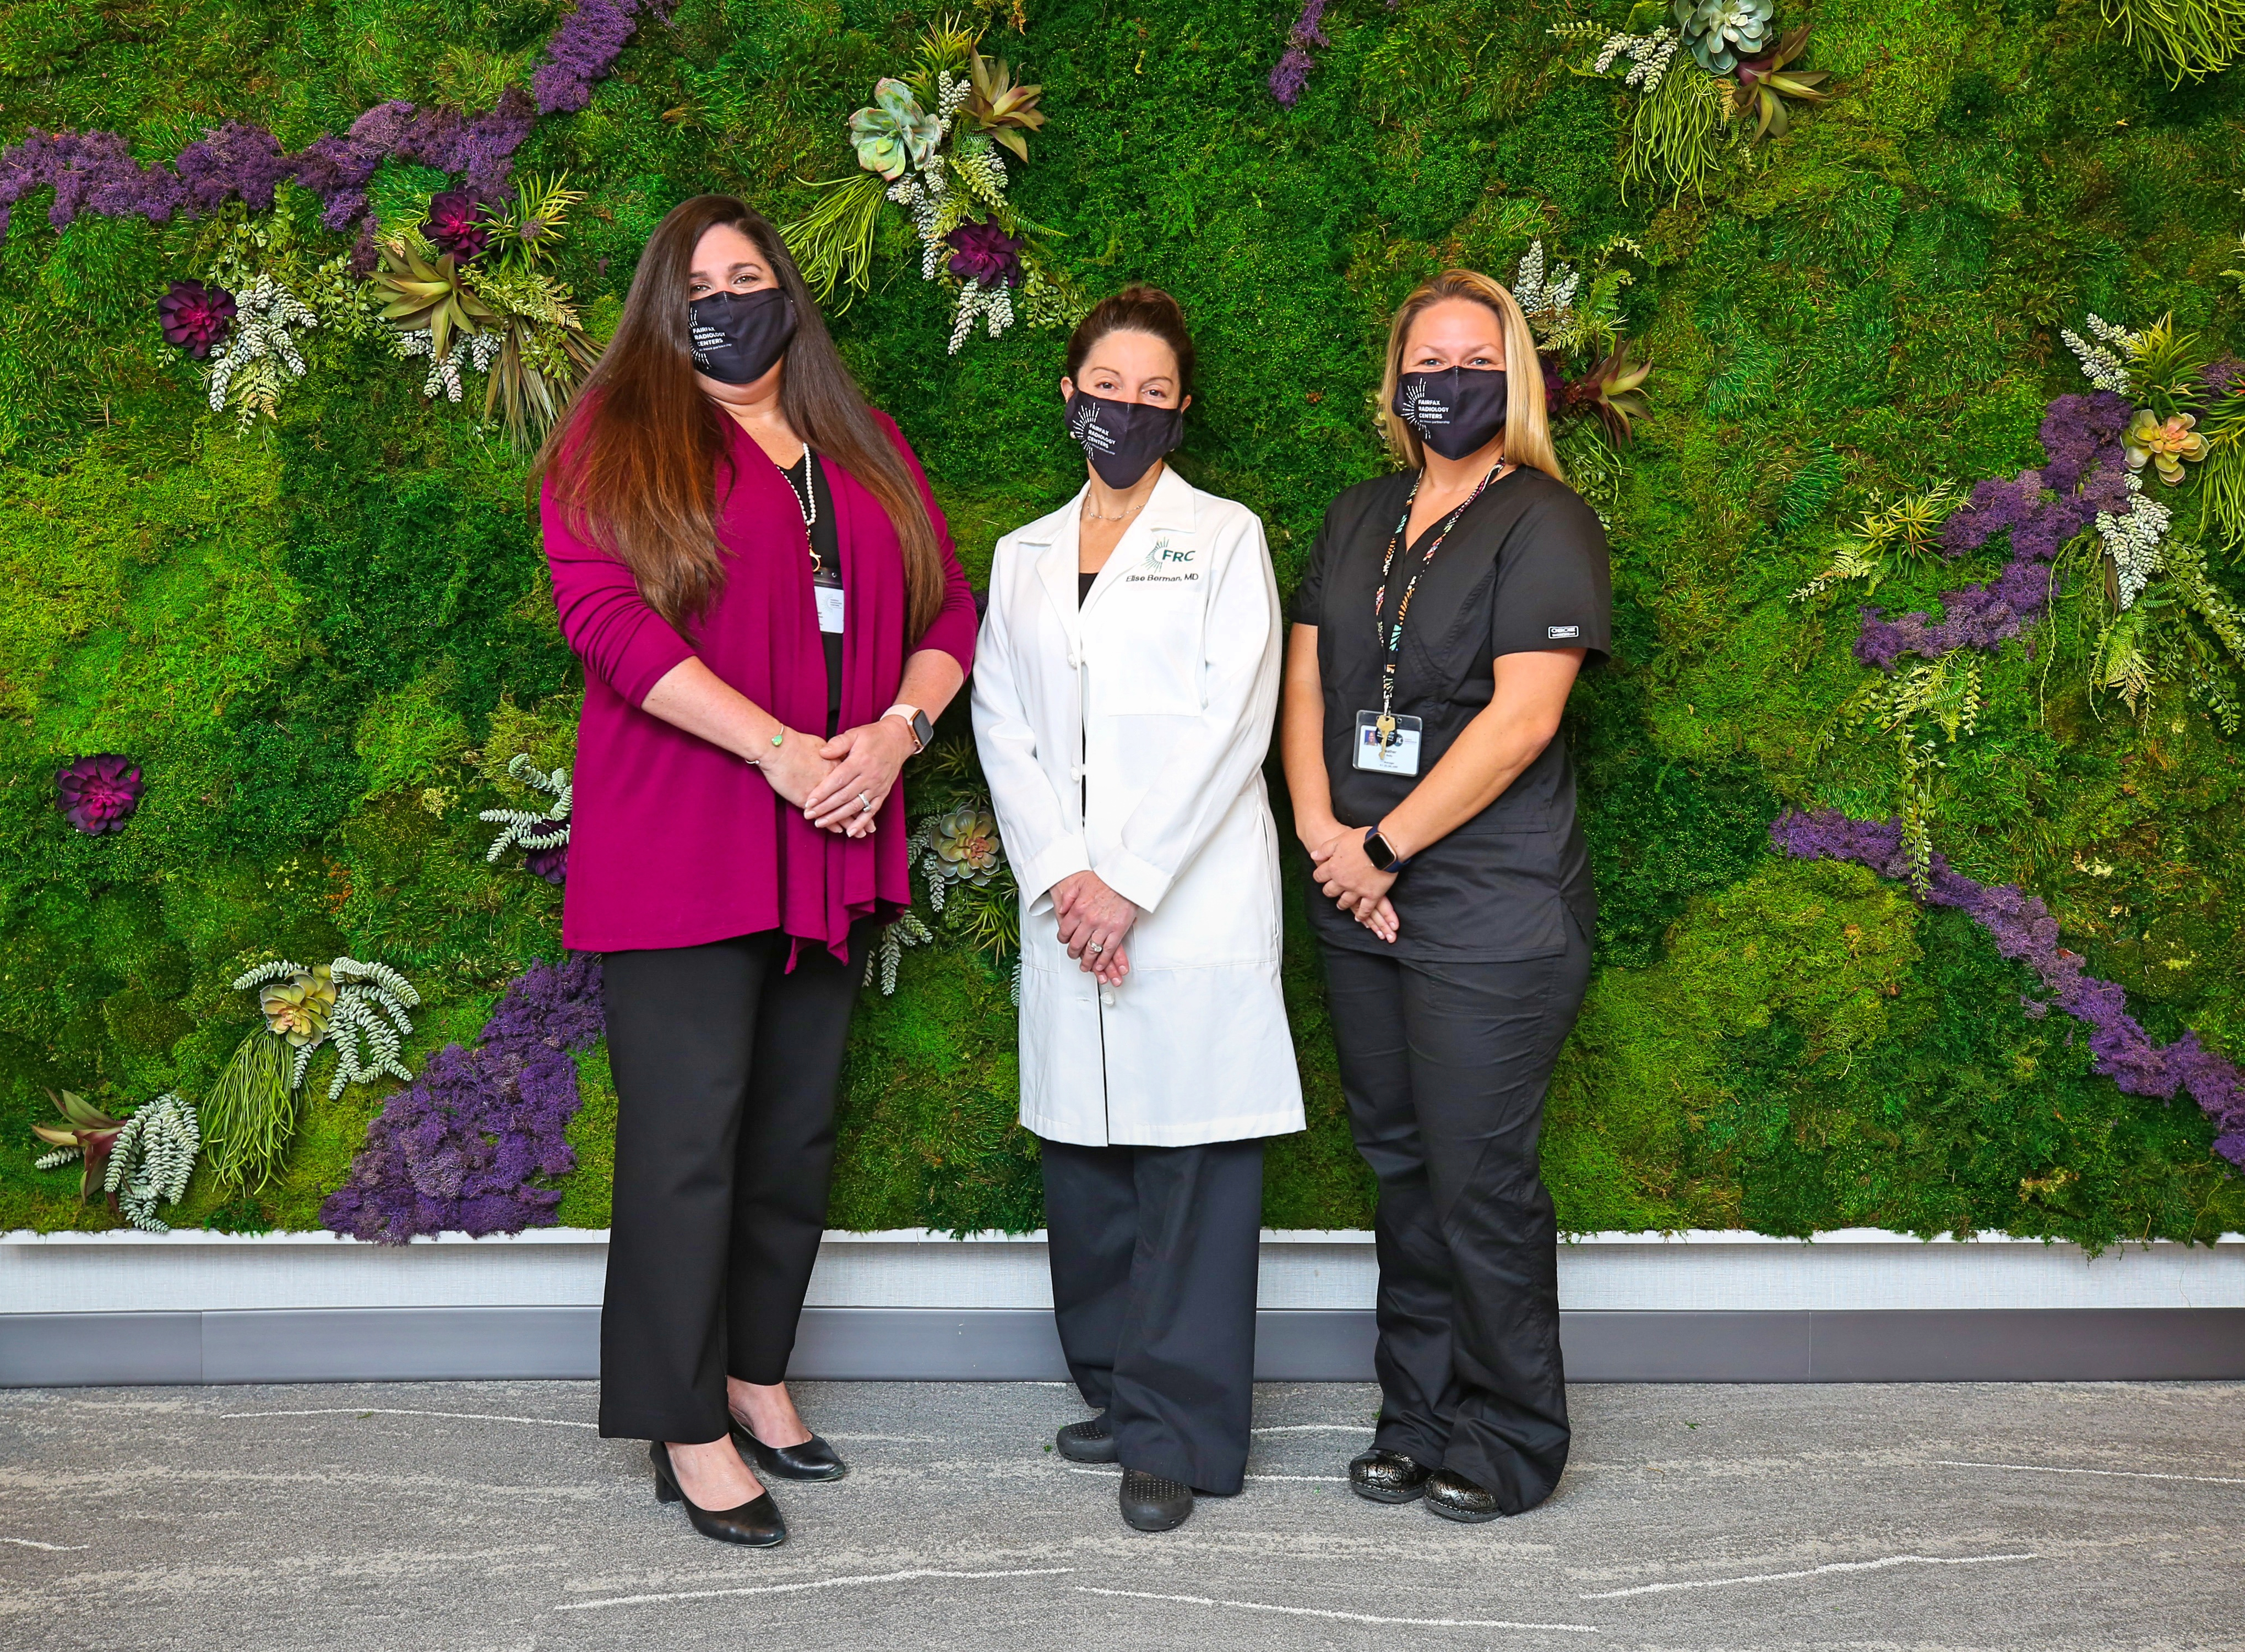 """Pictured  L to R  in front of the """"living wall"""" which is a focal point of the luxe lobby:  Heather Finizio, Senior Clinical Director, Fairfax Radiology Centers  Elise Berman M.D., Fairfax Radiological Consultants, PC  Heather Reilly,Center Manager Fairfax Radiology Breast Center of Loudoun Dr. Bermanis one of more than 90subspecialty trained FRC radiologists, approximately 20 of whom specialize in breast imaging. This additional training, referred to as a breast imaging fellowship, provides radiologists like Dr. Berman with additional acumen in the detection of breast cancers."""